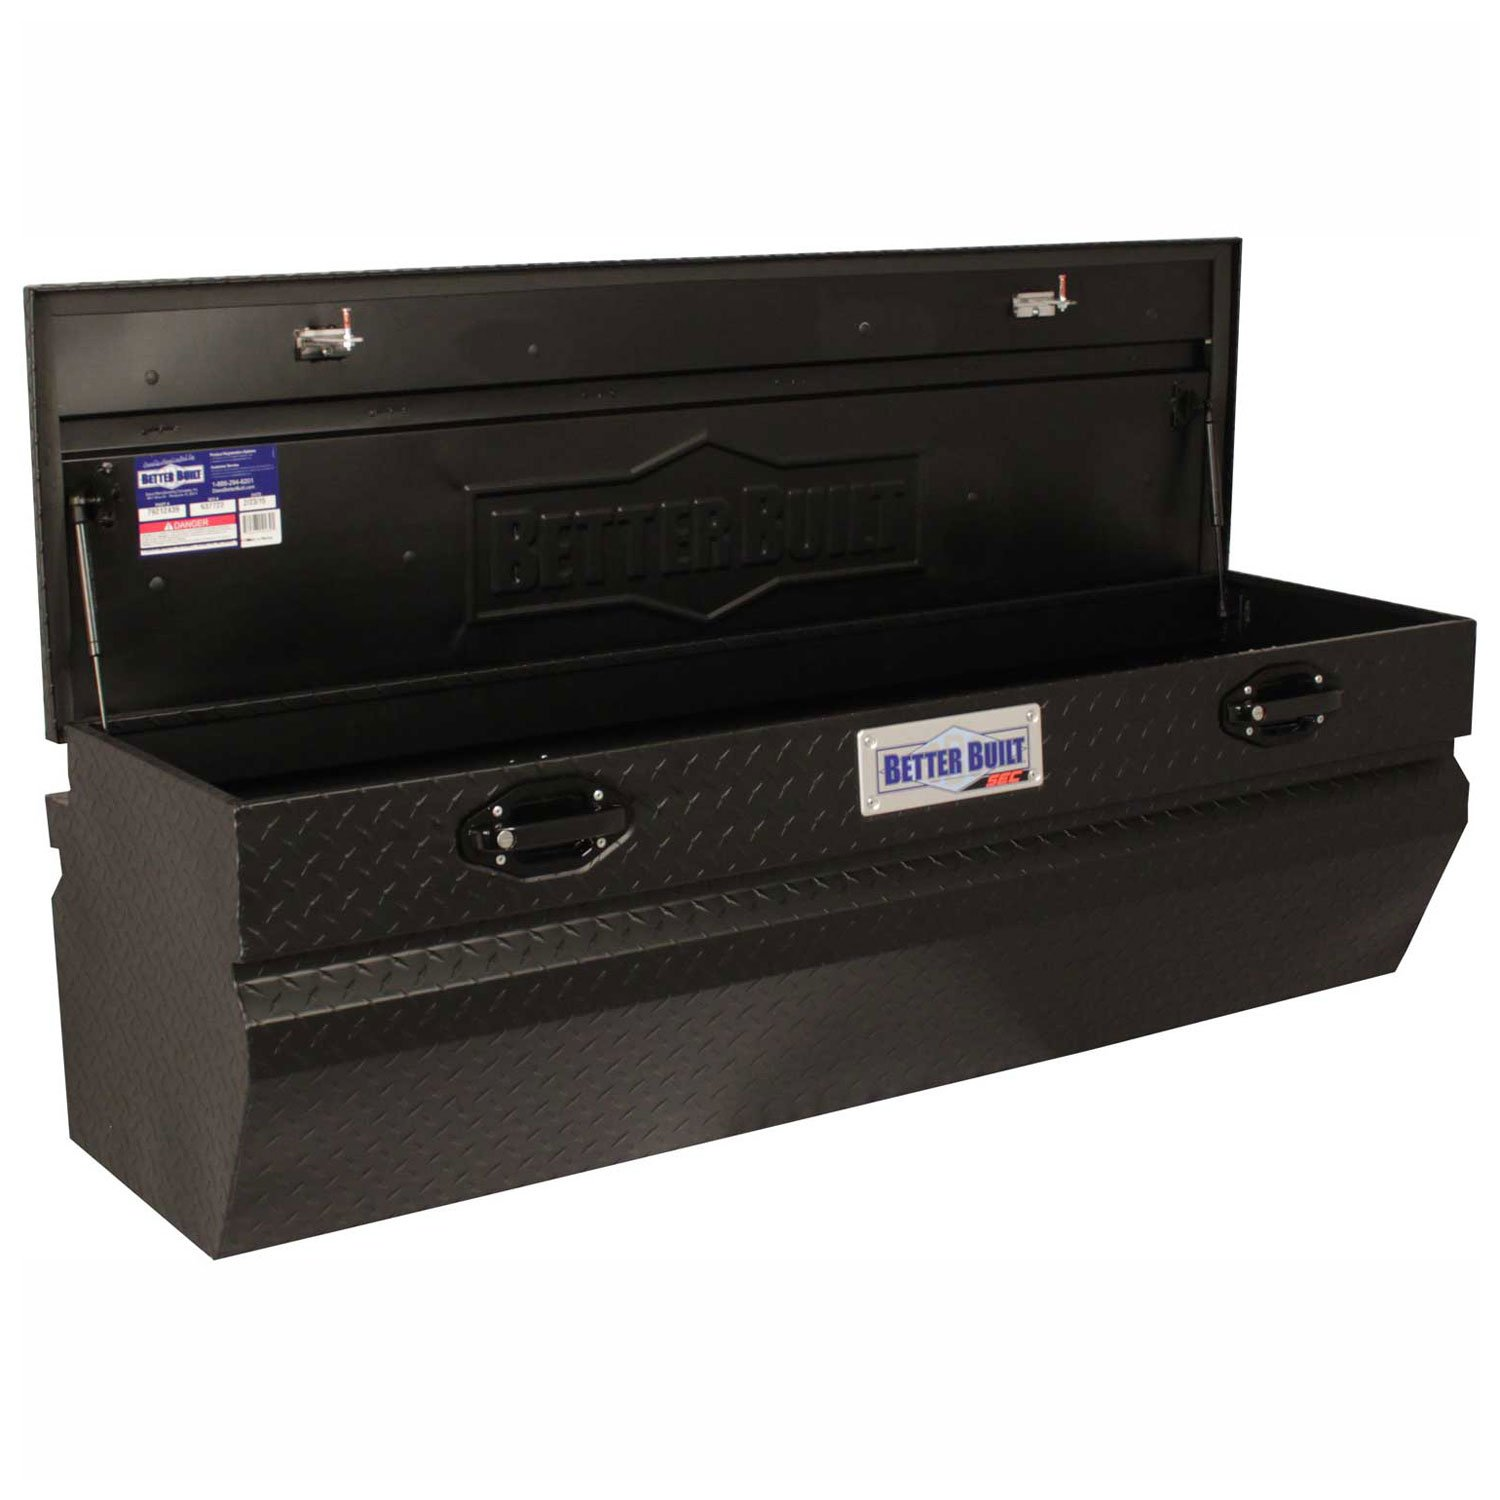 Better Built Aluminum 56'' Truck Chest, Matte Black, Single Lid - 79212438 by Better Built